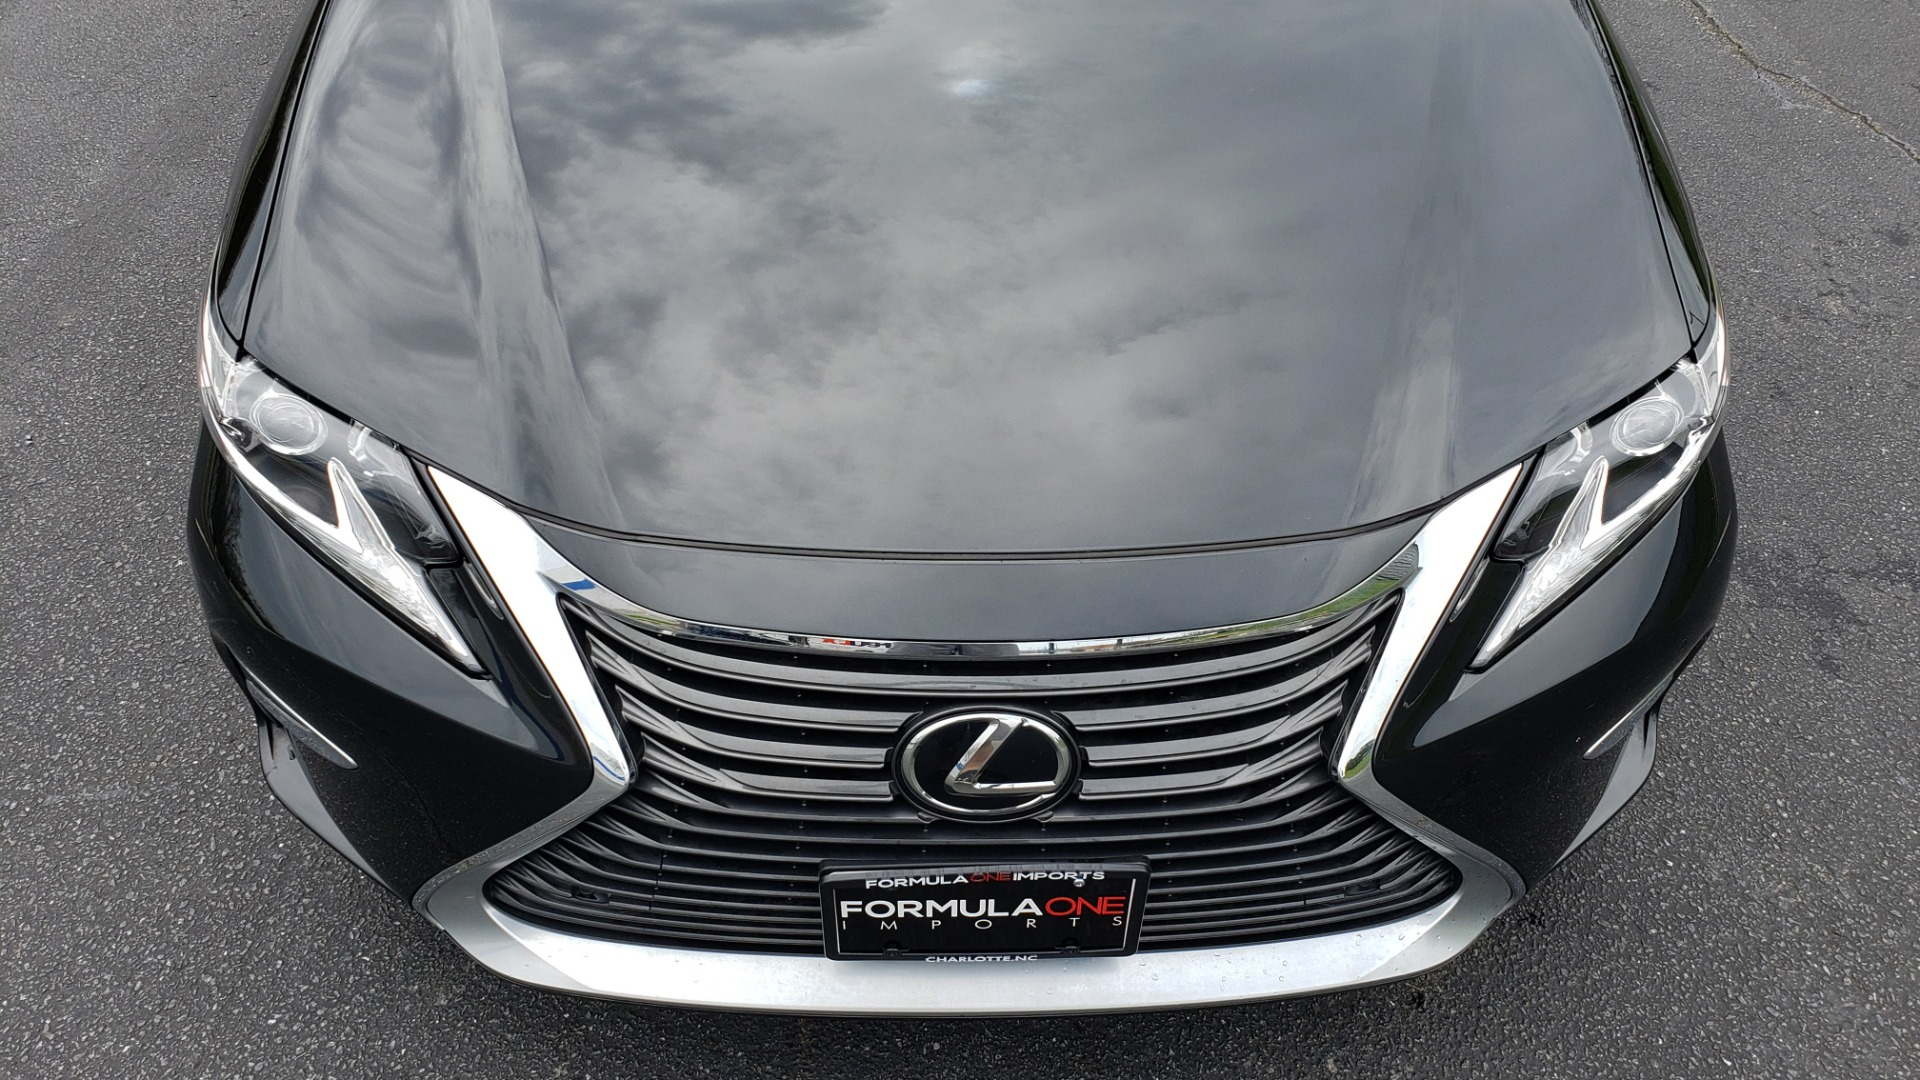 Used 2017 Lexus ES 350 PREMIUM / SUNROOF / PARK ASST / BSM / VENT SEATS / REARVIEW for sale Sold at Formula Imports in Charlotte NC 28227 25